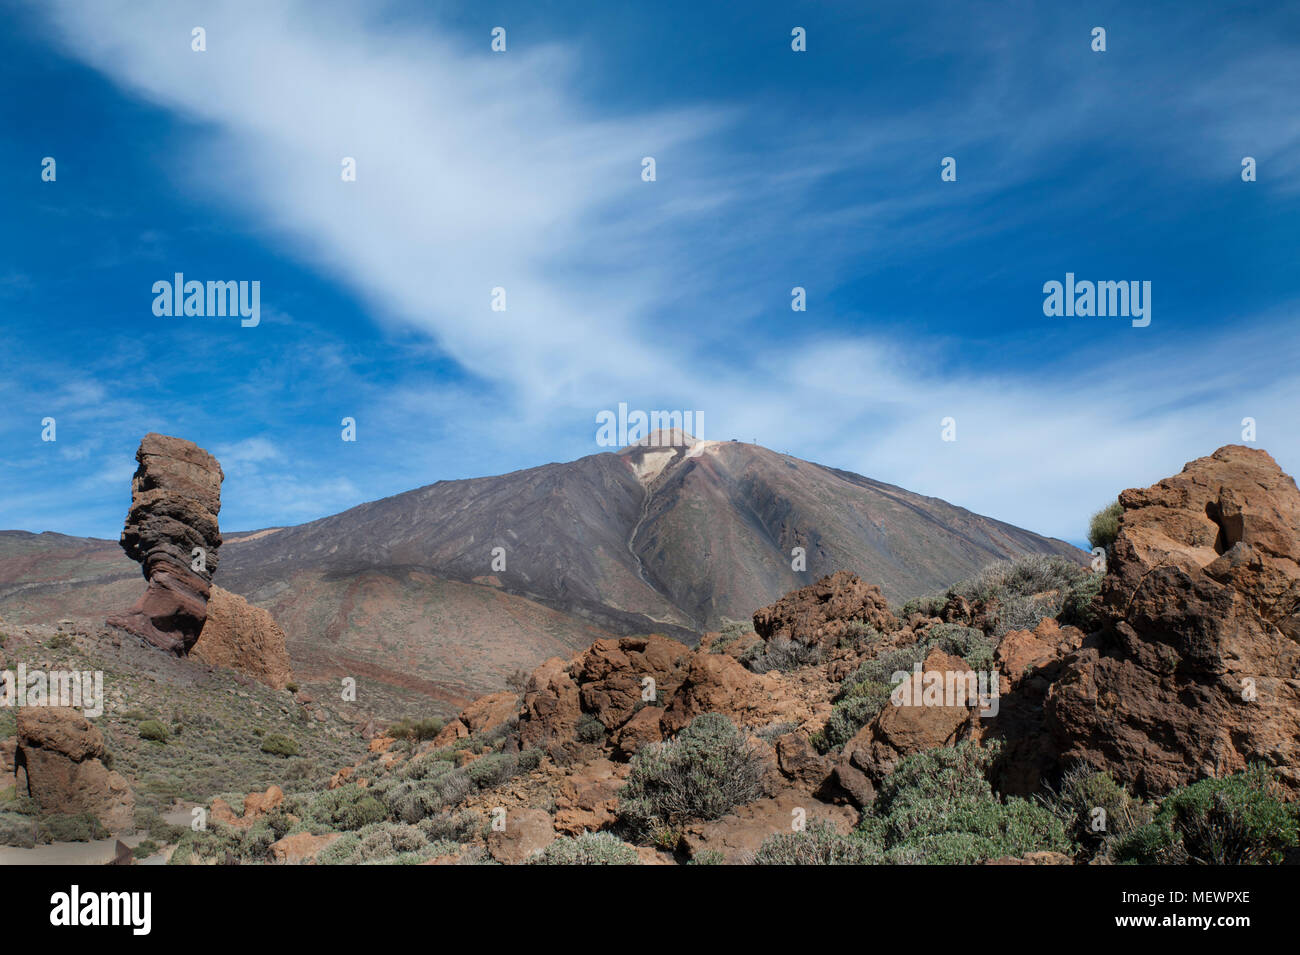 Majestic view towards Teide, the highest volcanic peak in Spain, Tenerife, Canary Islands, Spain - Stock Image